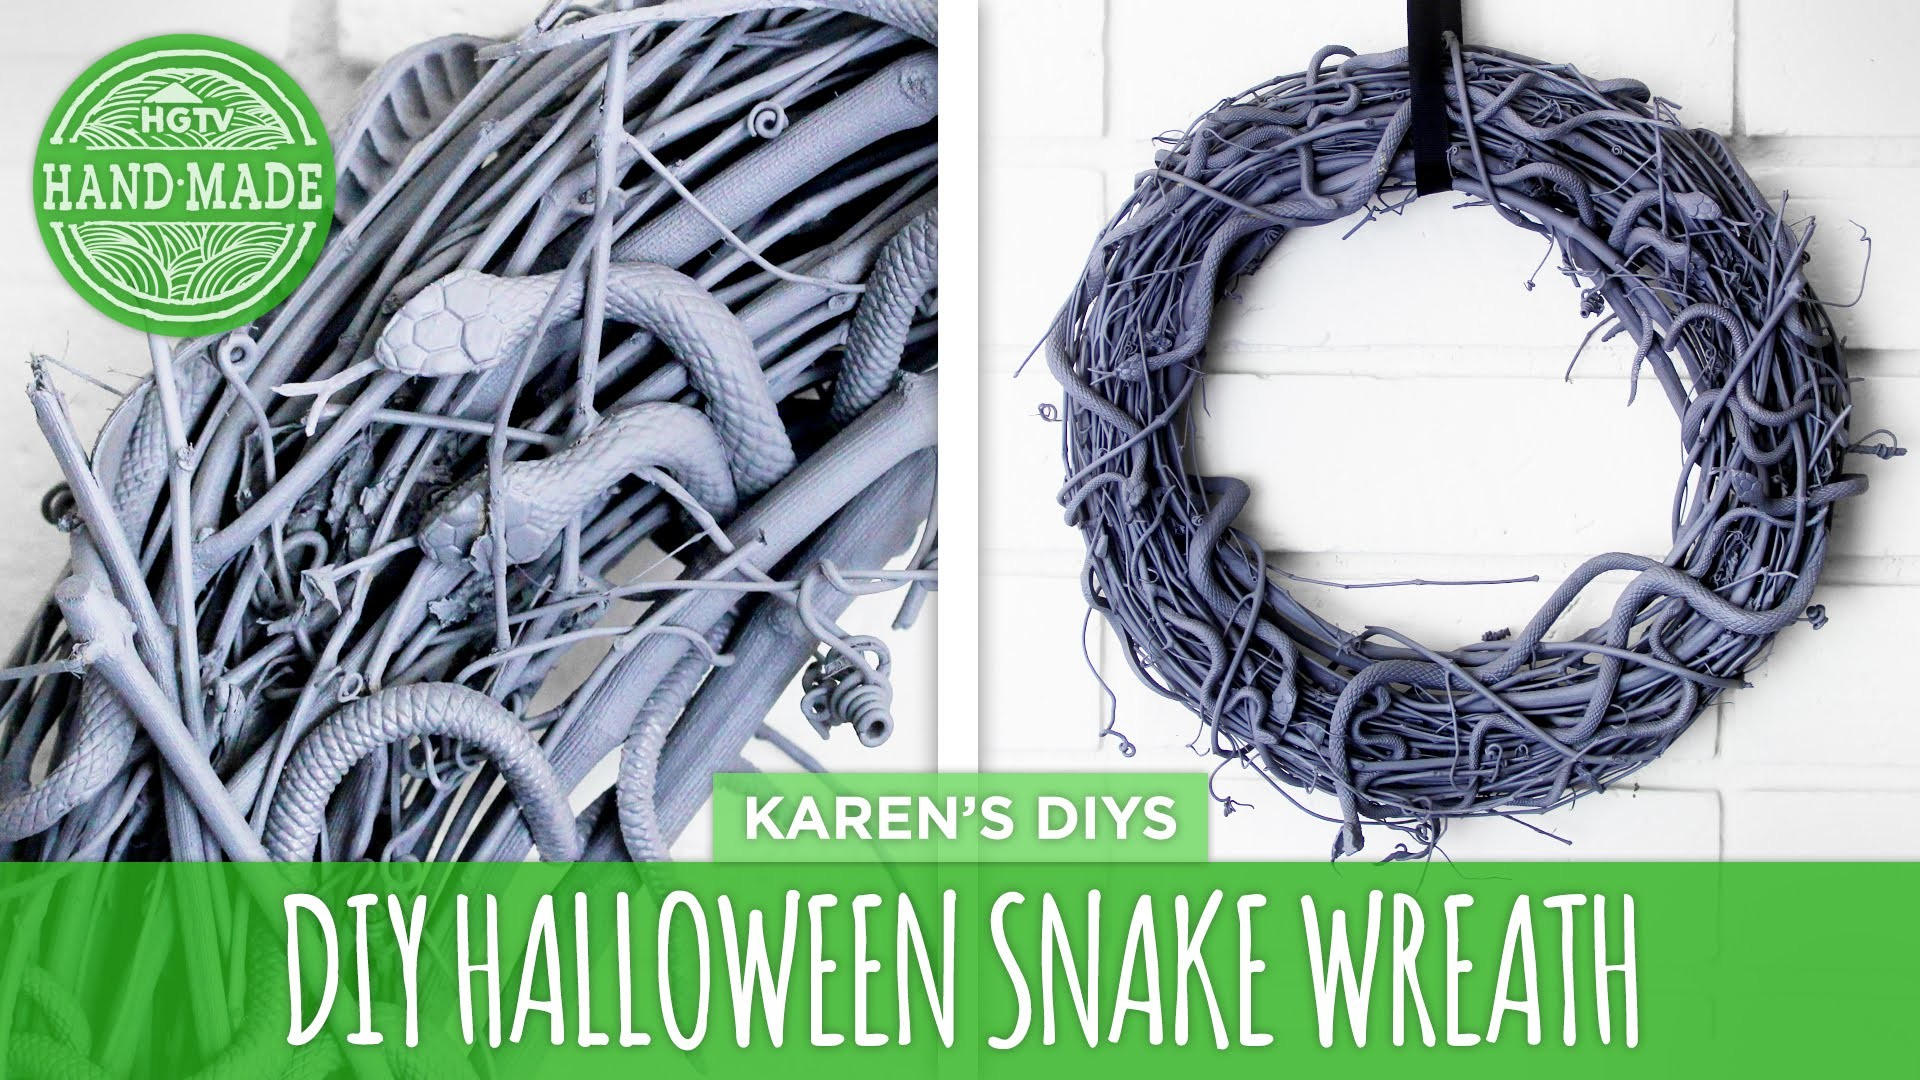 DIY Halloween Snake Wreath - HGTV Handmade